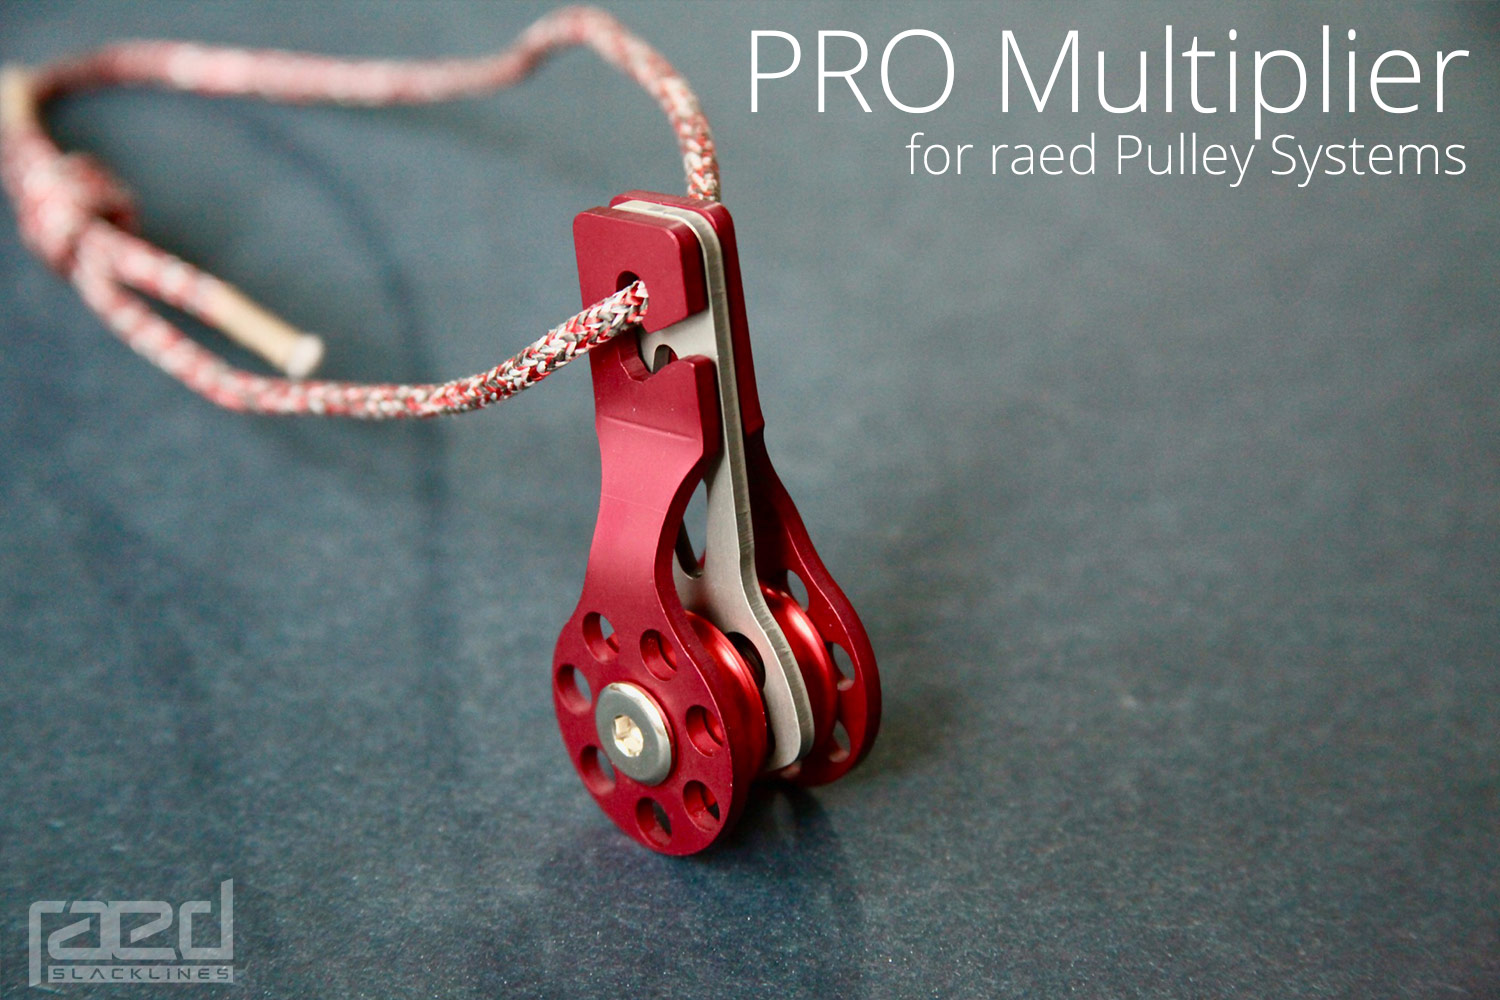 New PRO Multiplier